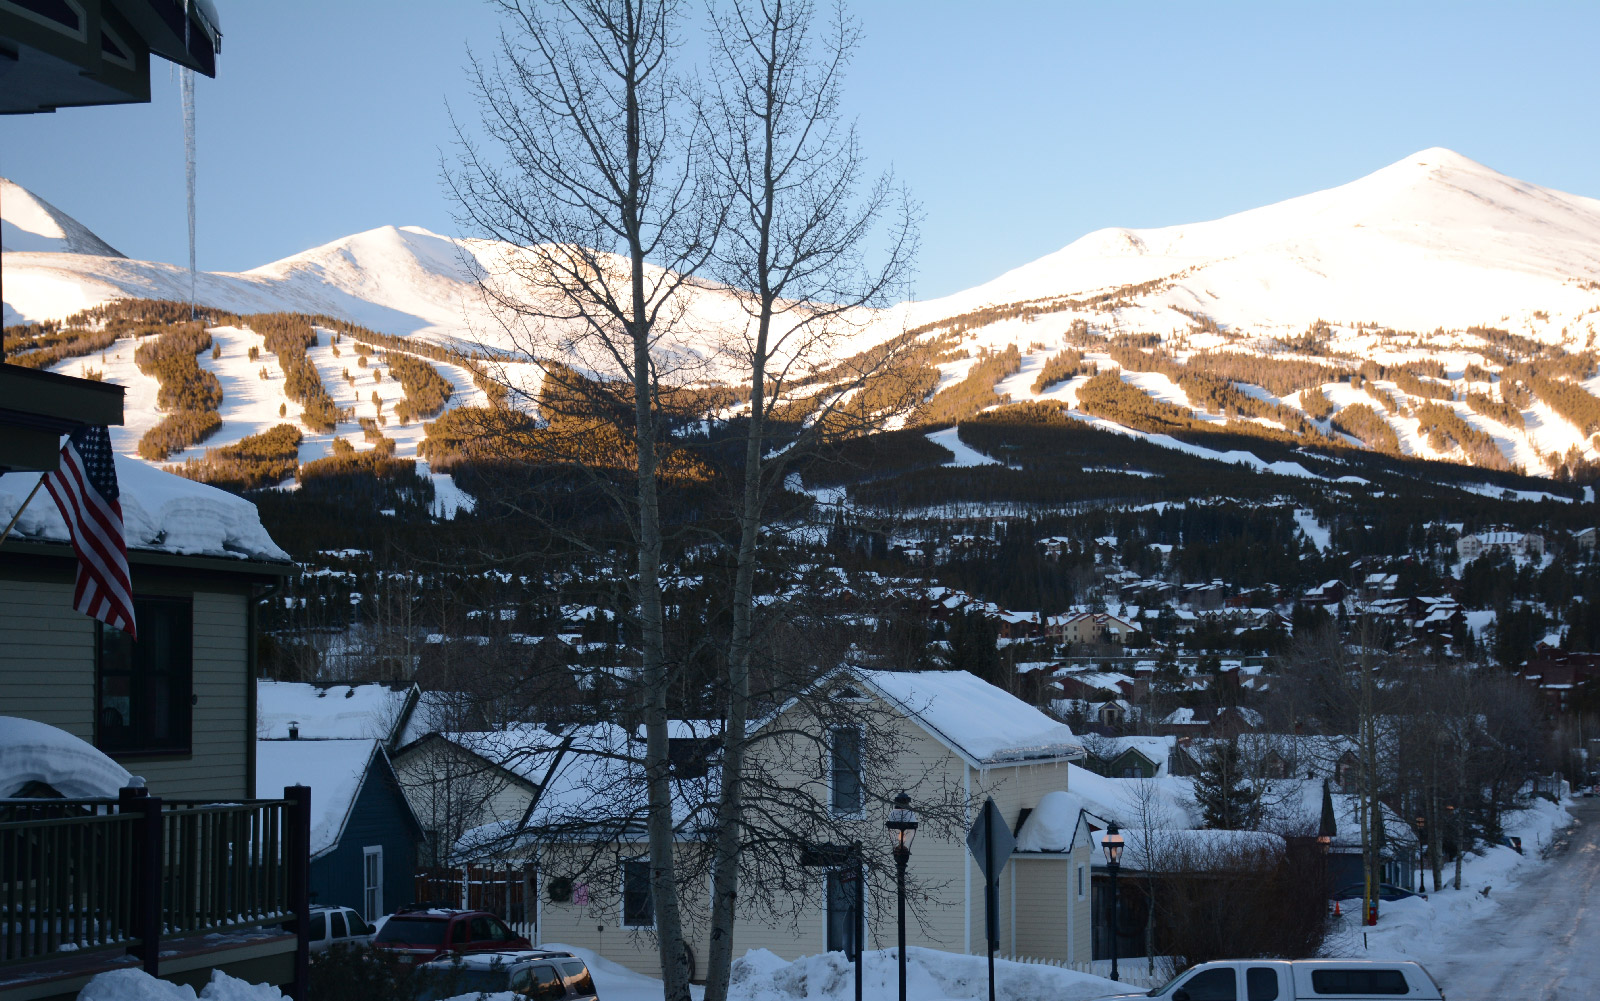 Town of Breckenridge with ski mountain in the background